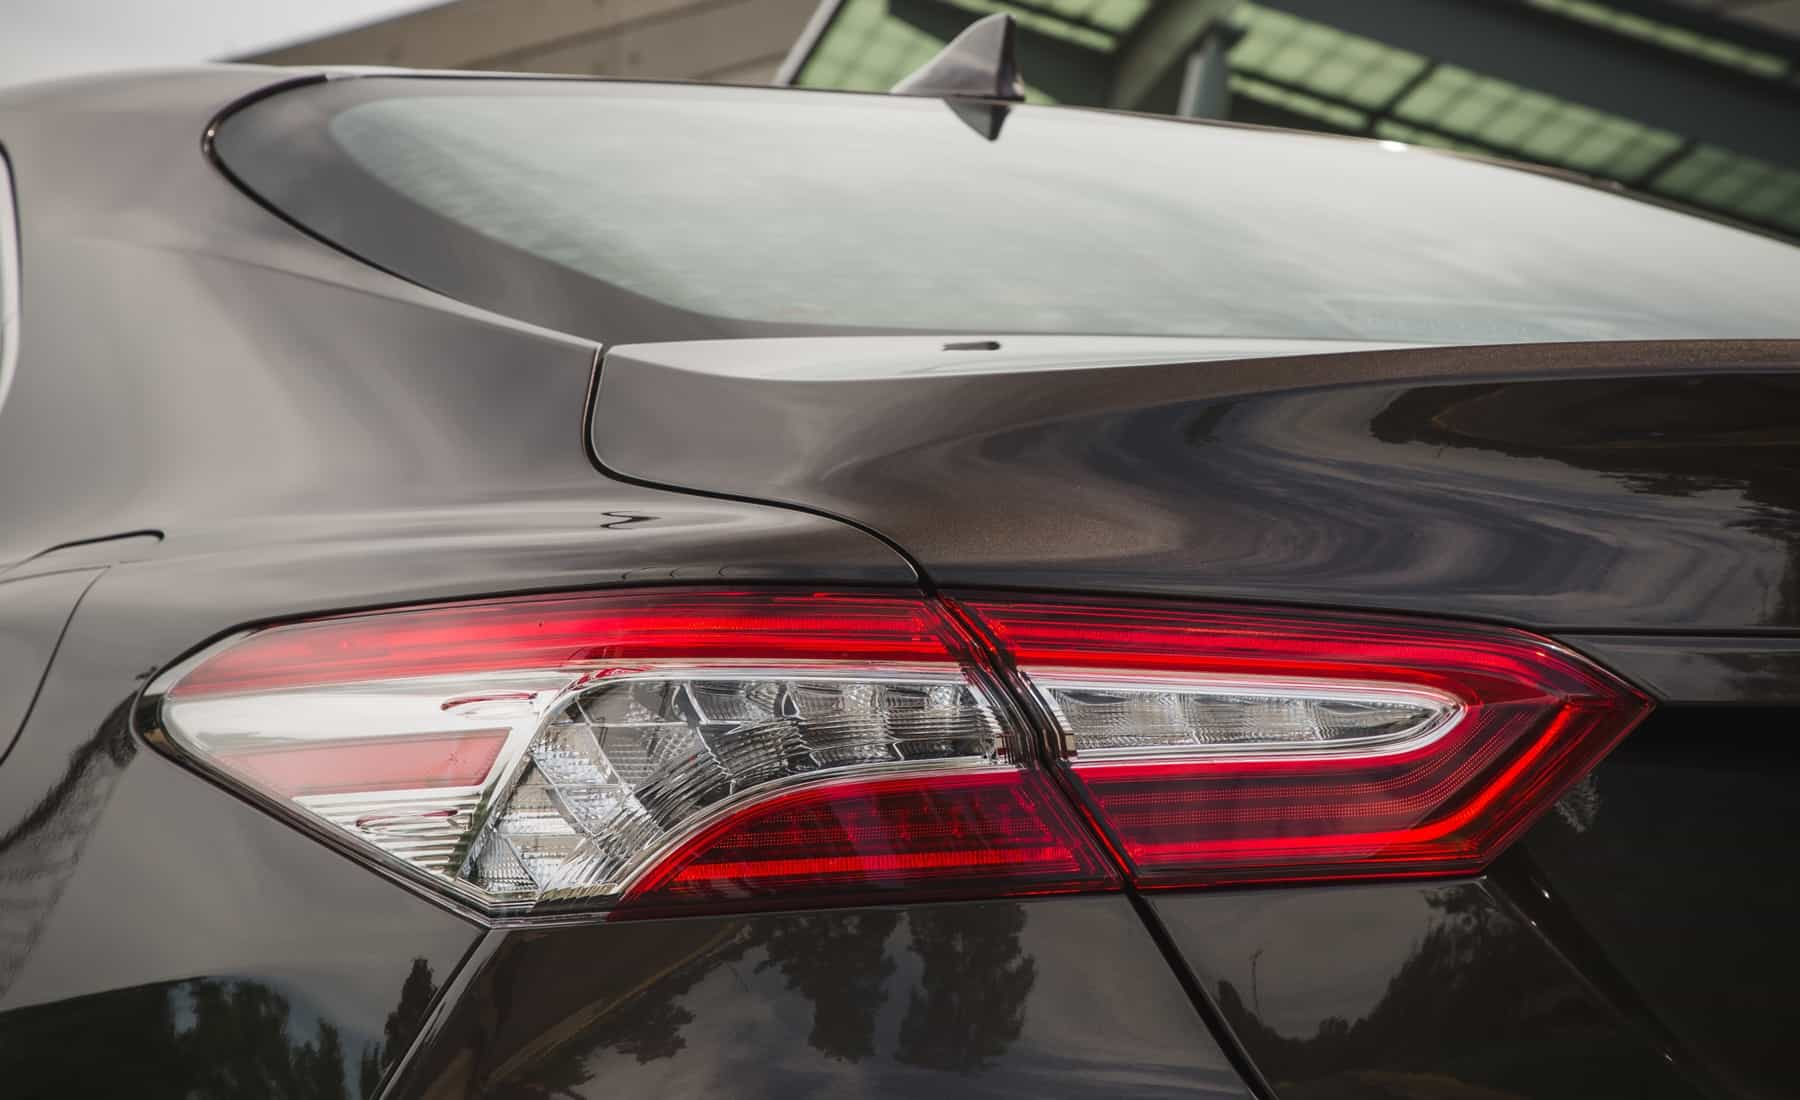 2018 Toyota Camry Hybrid XLE Exterior View Taillight (Photo 29 of 41)